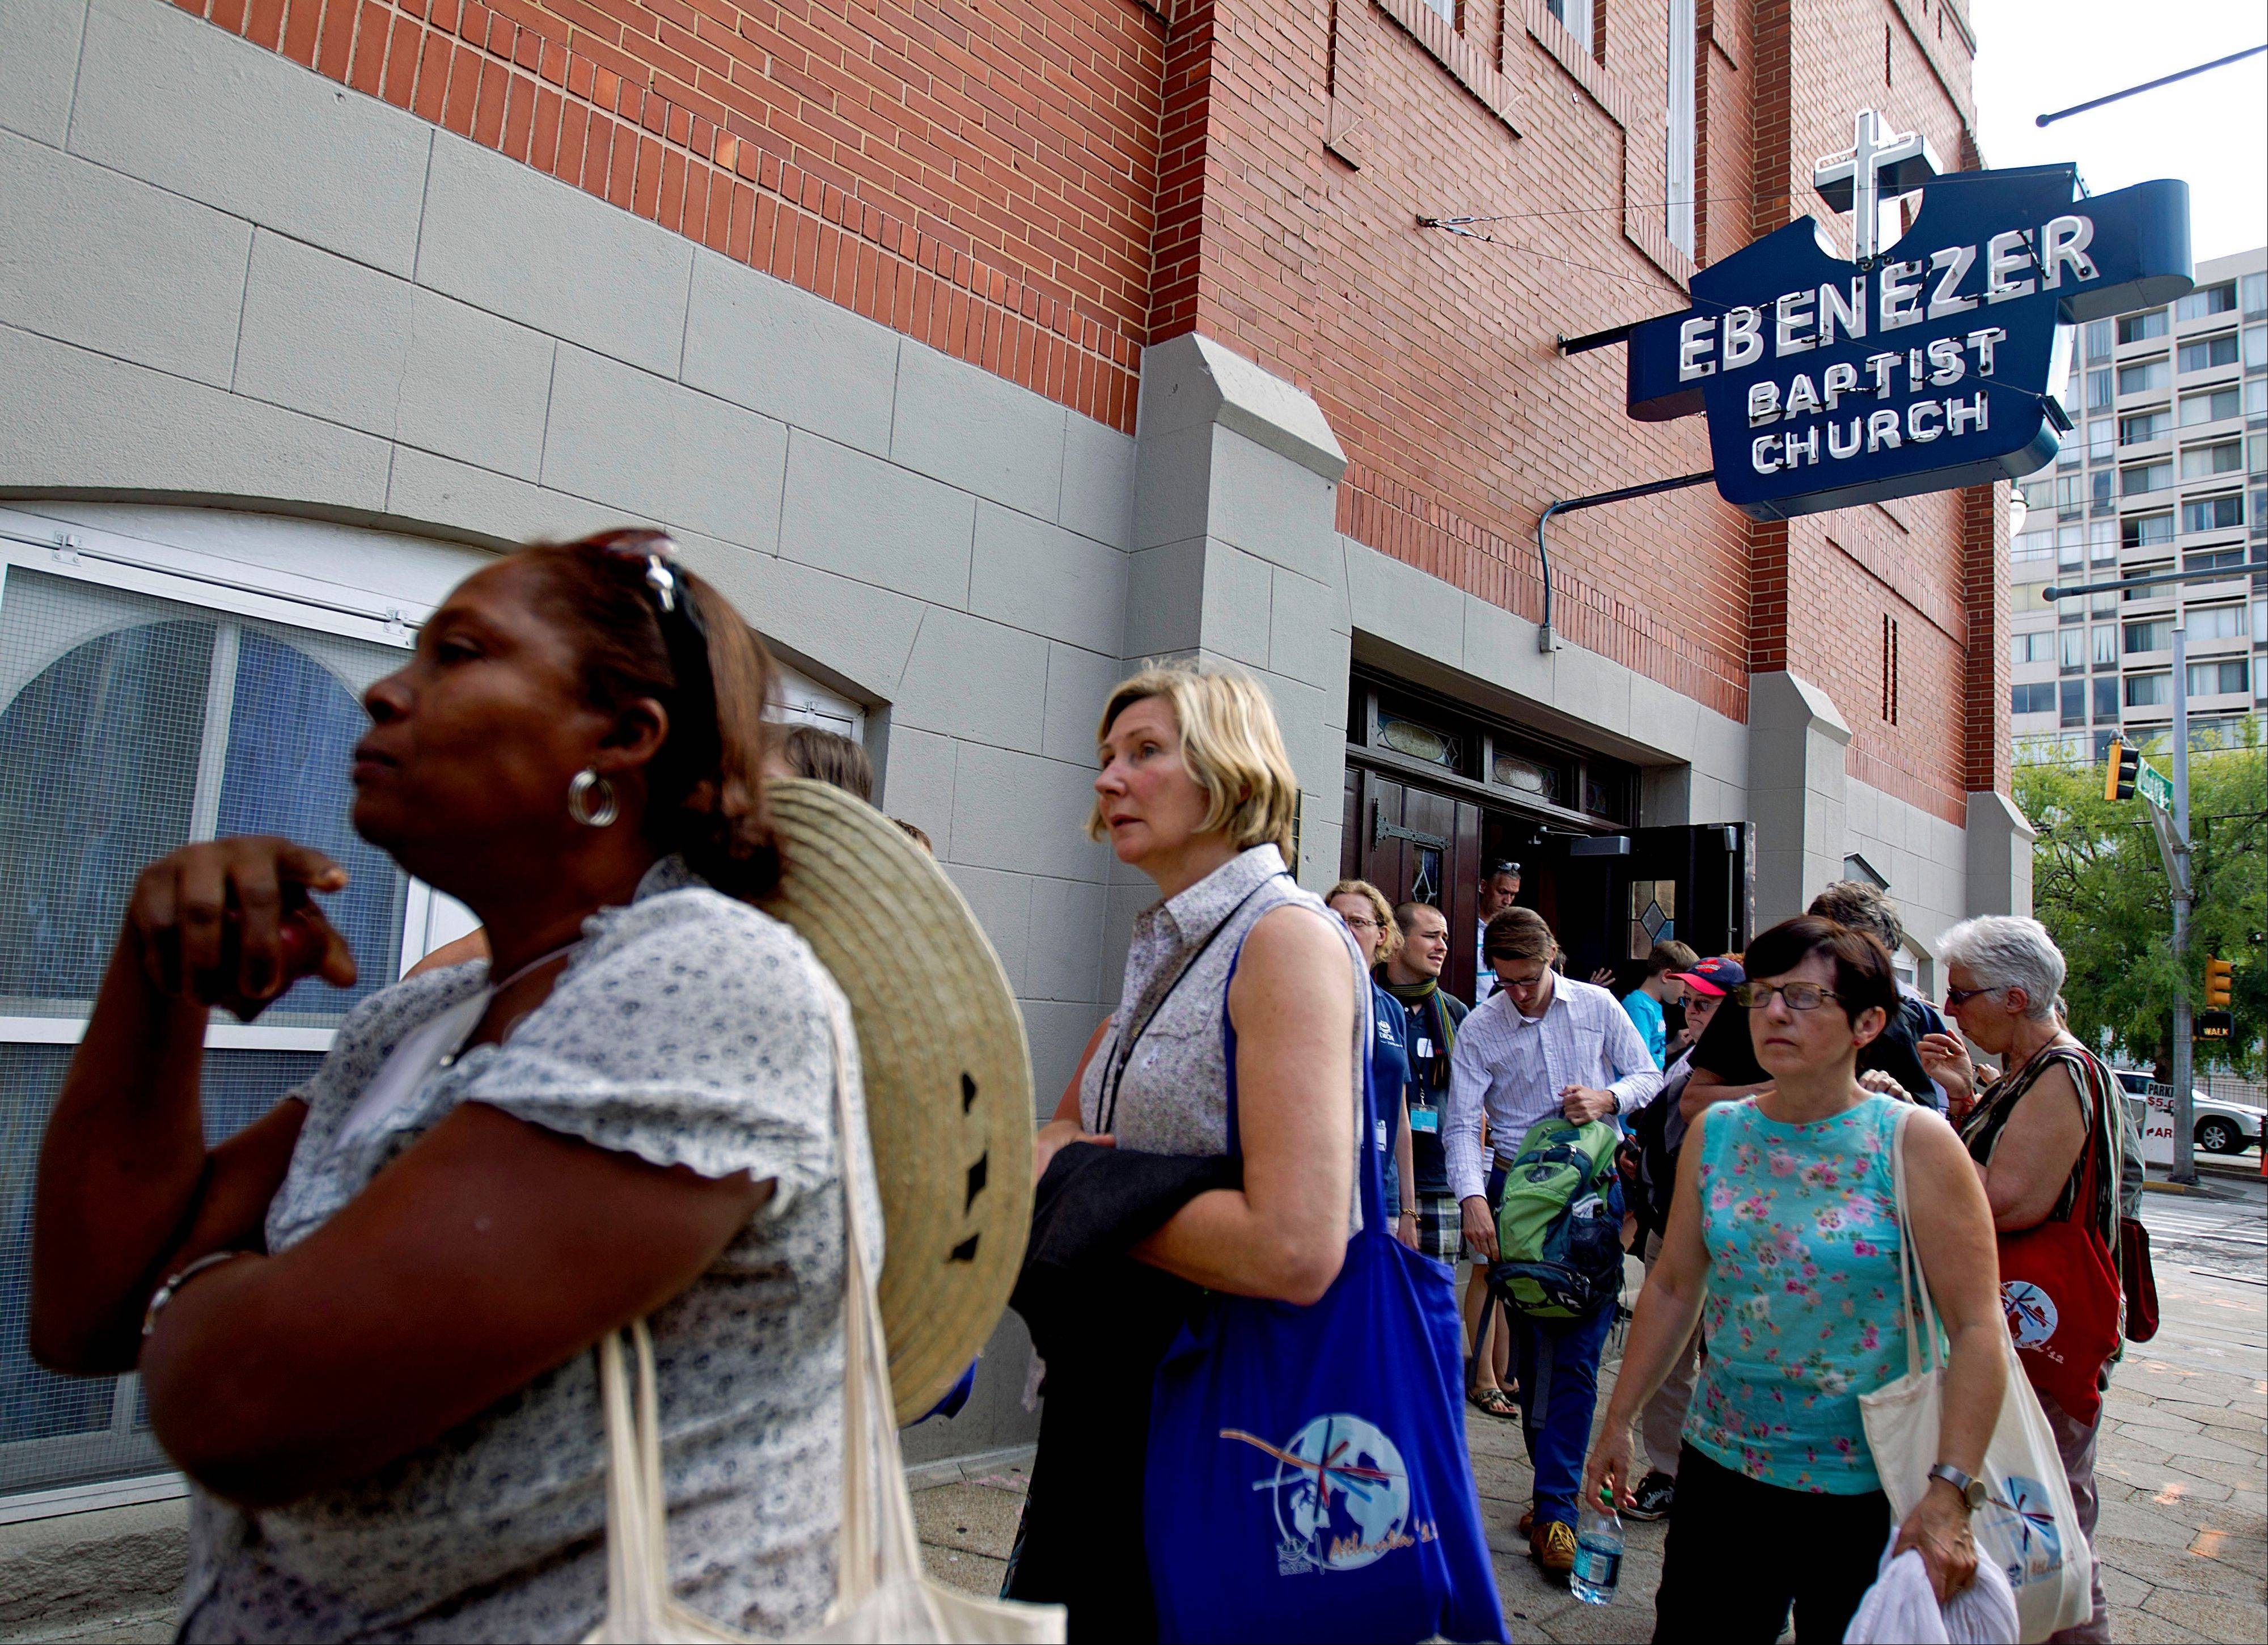 Tourists visit the Ebenezer Baptist Church where Rev. Martin Luther King Jr. preached in Atlanta.